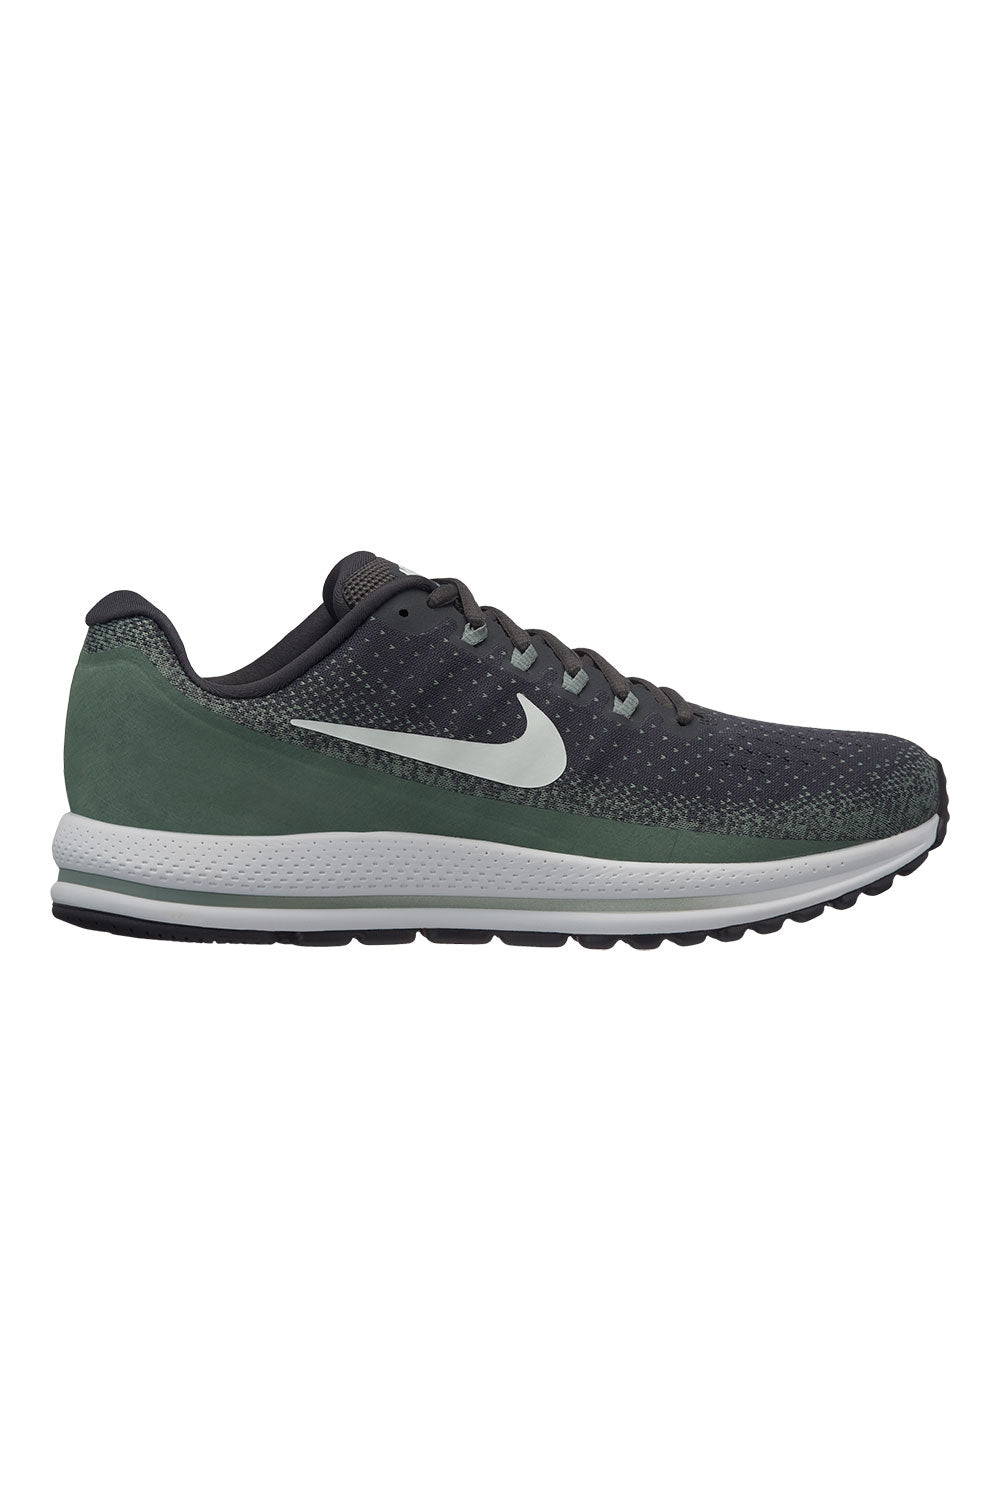 ea3d1d7ac17 Men s Air Zoom Vomero 13 by Nike at Gazelle Sports